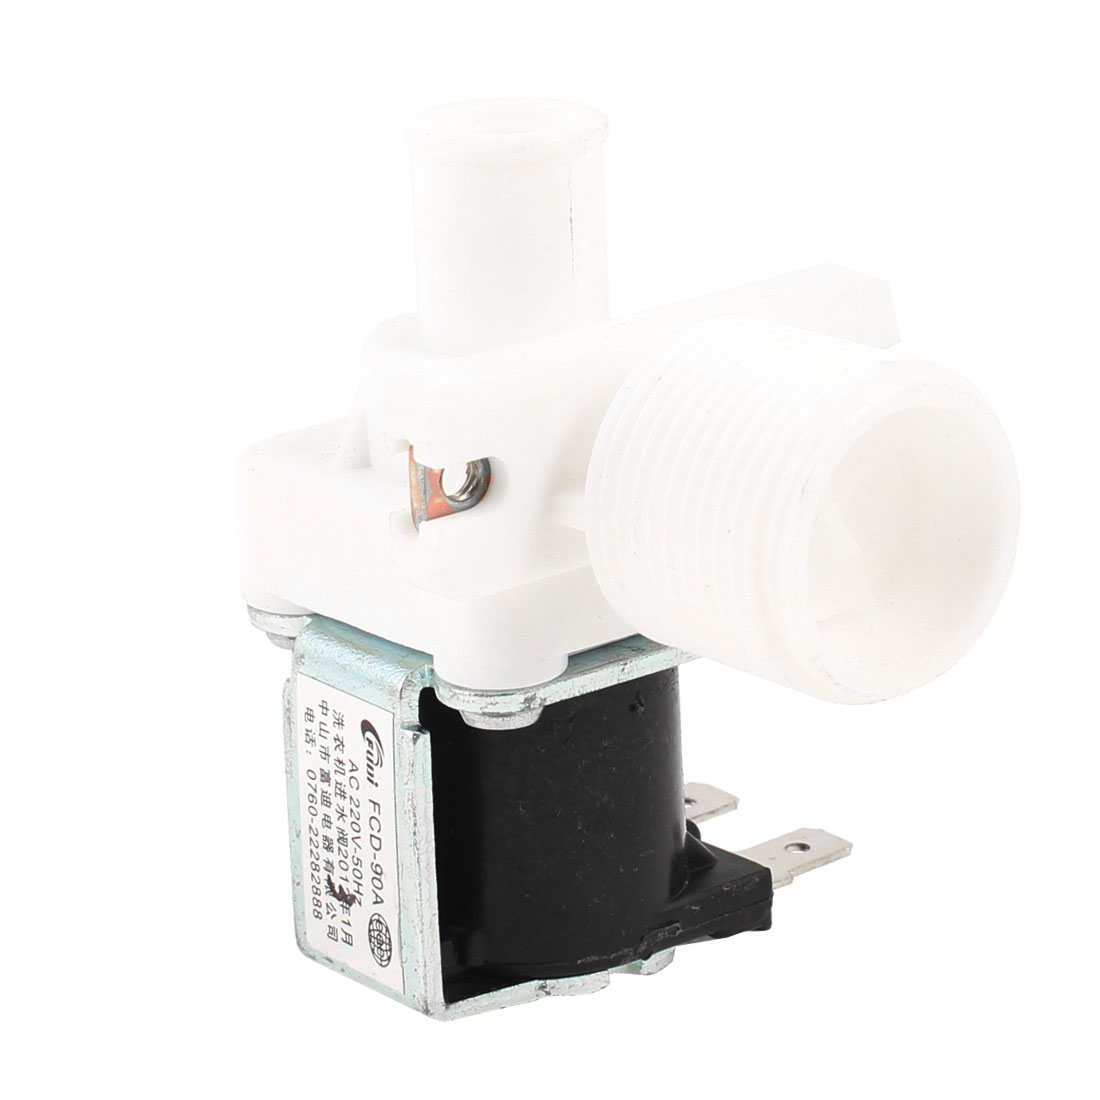 AC 220V 50HZ 2 Terminal Washing Machine Solenoid Valve Black White